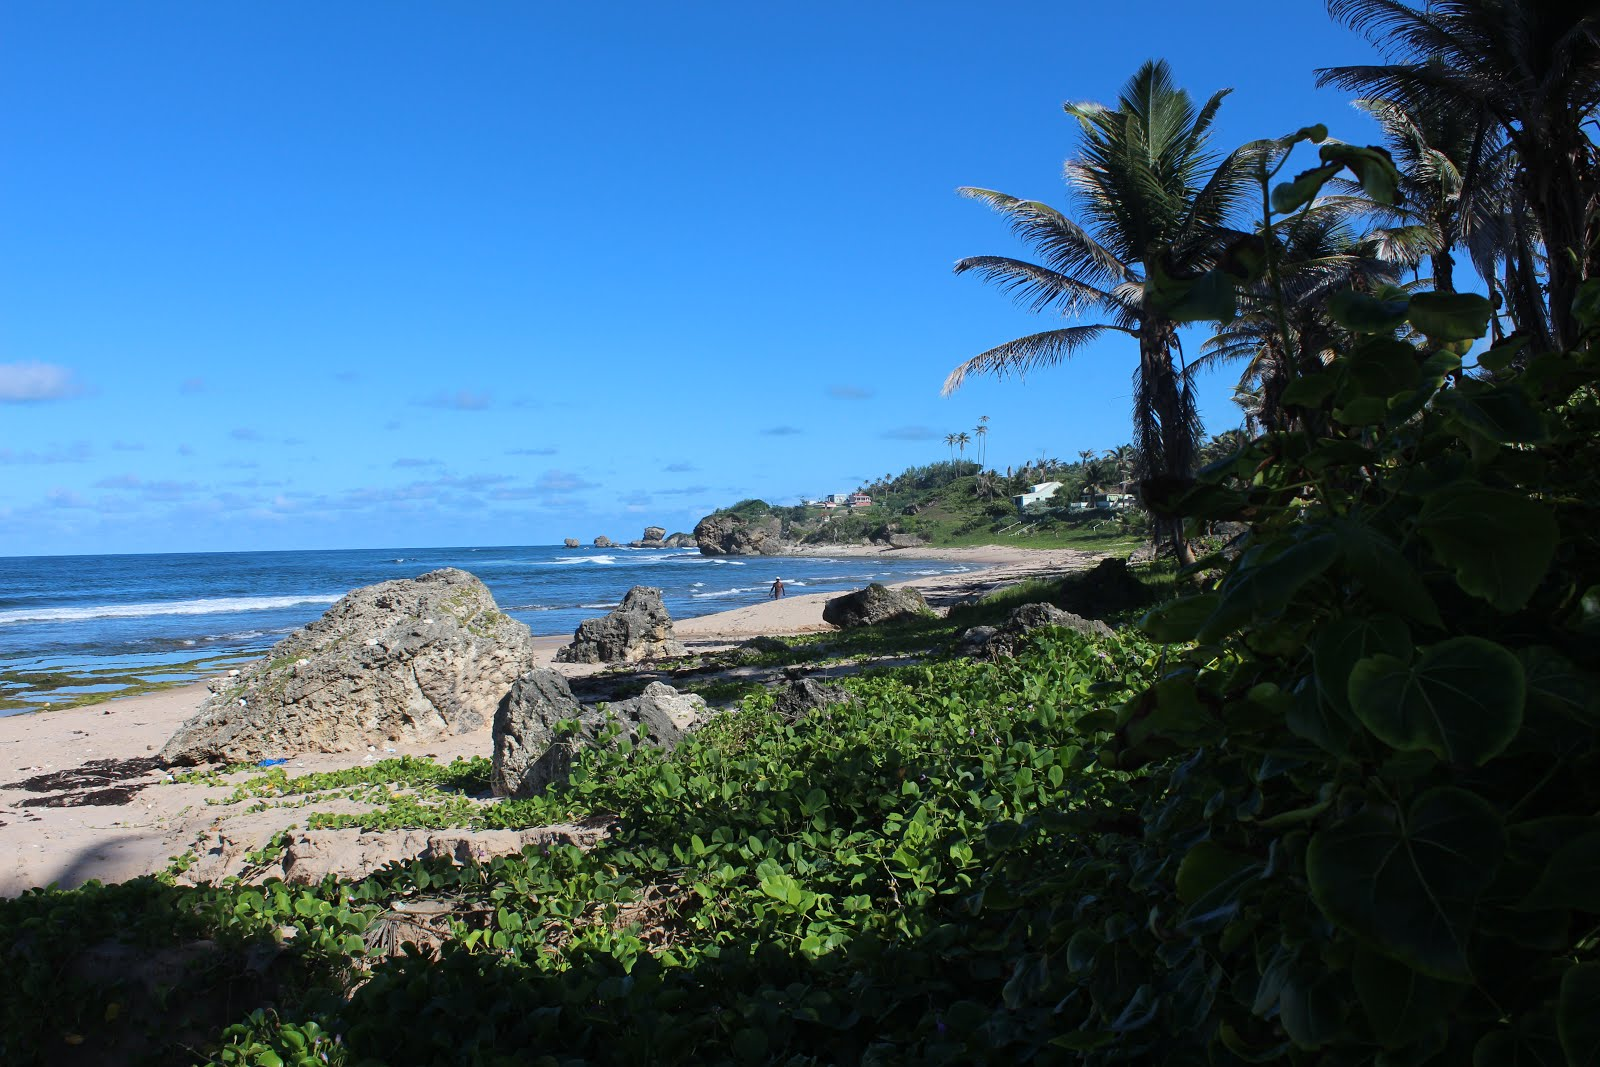 Beach View Bathsheba St Joseph Barbados